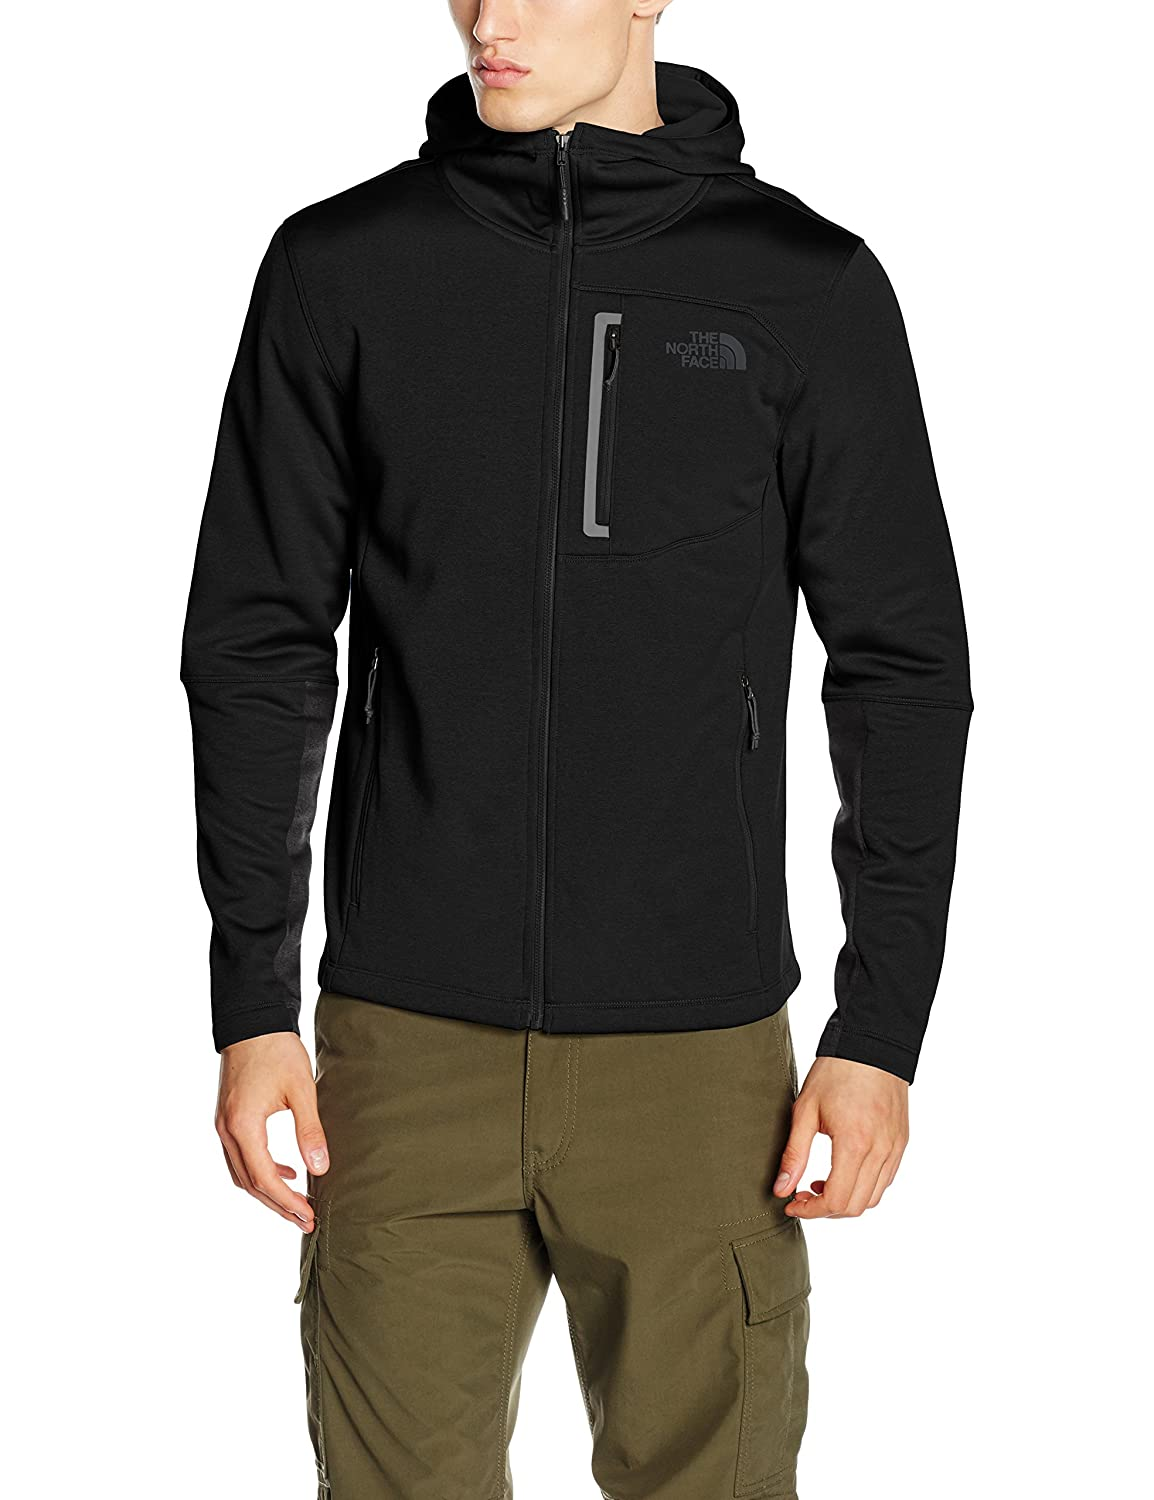 TALLA M. The North Face M Canyonlands Hoodie Camiseta, Hombre, Negro, M